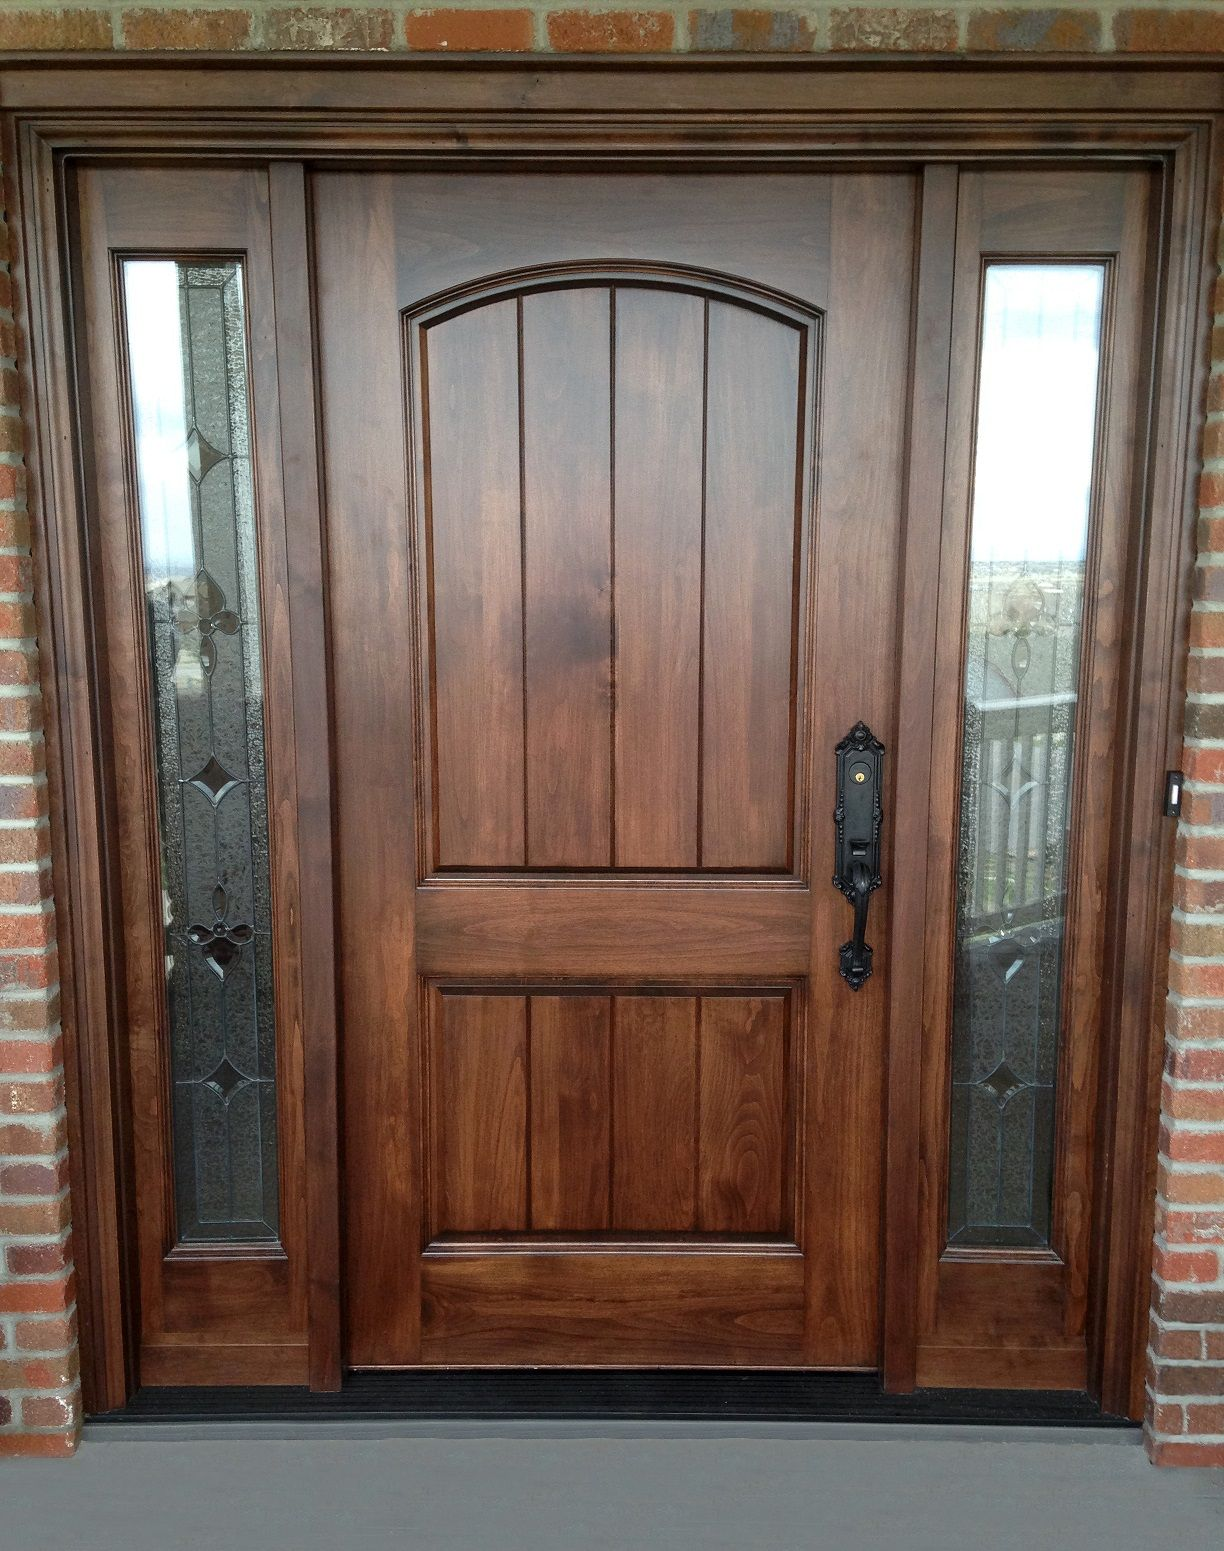 Leaded Glass Sidelights Add A Distinctive Flair To This Select Alder Door Unit With Arched Top Rail And Raised Panels V Groove Home Entry Doors